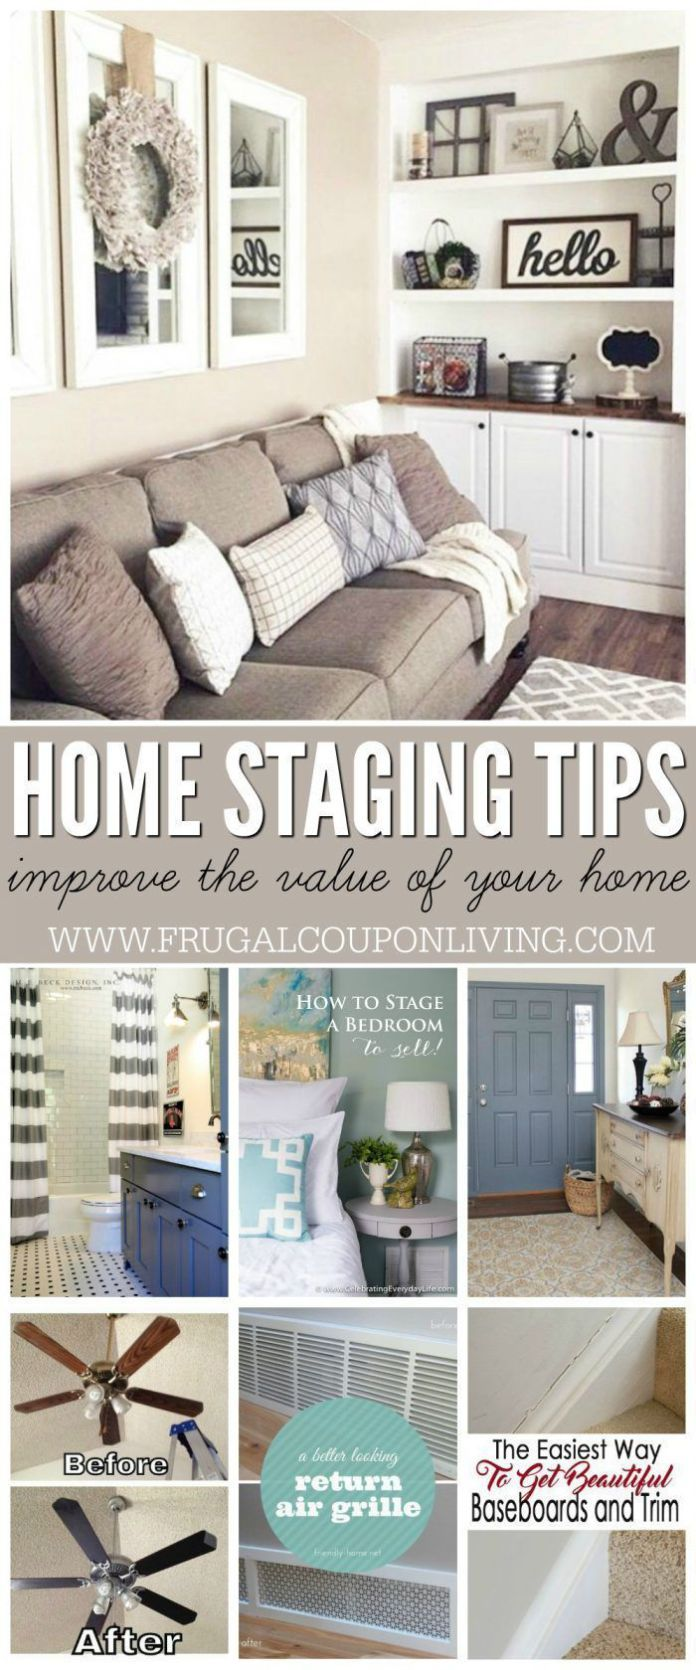 Best Diy Crafts Ideas For Your Home : Home Staging Tips and Ideas ...